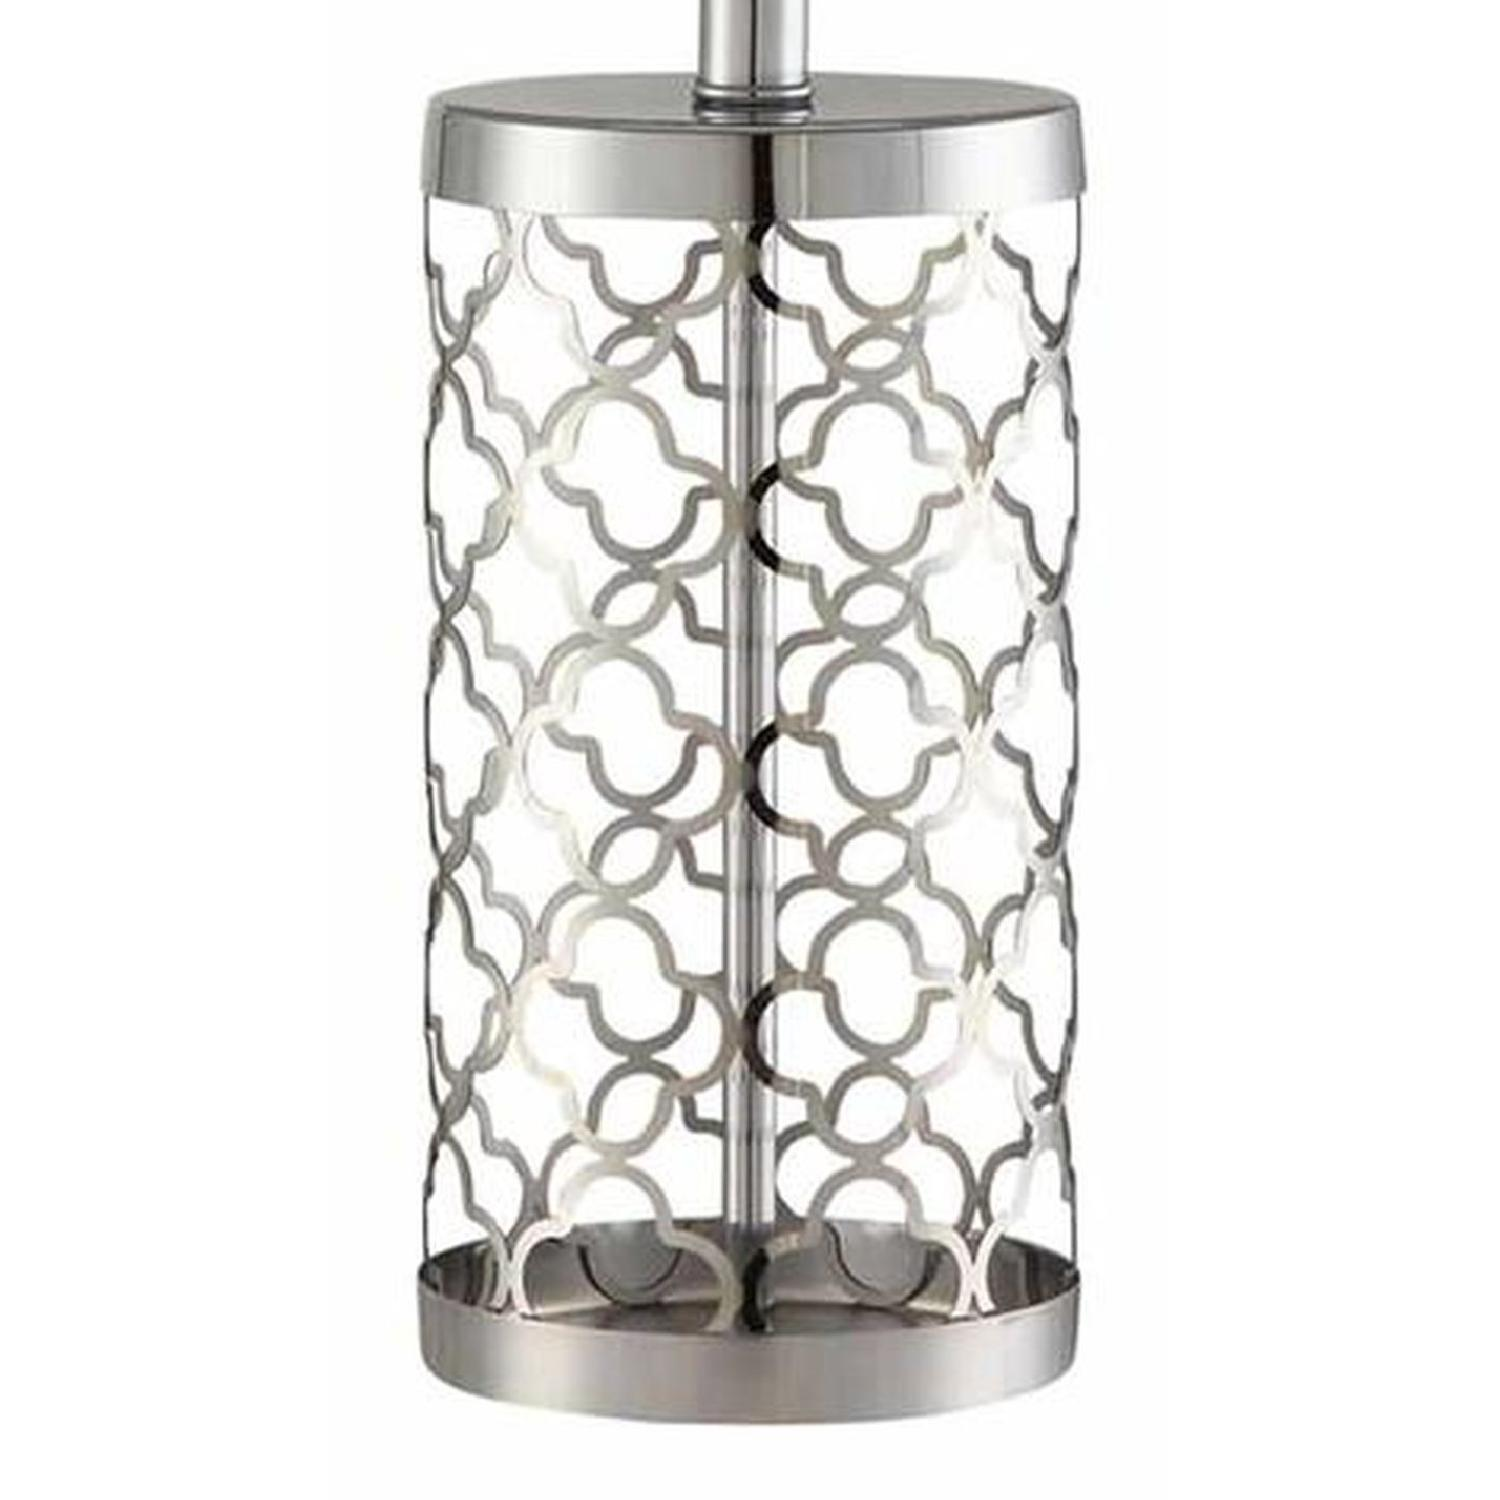 Table Lamp in Light Gold Base w/ Cut-Out Pattern - image-2